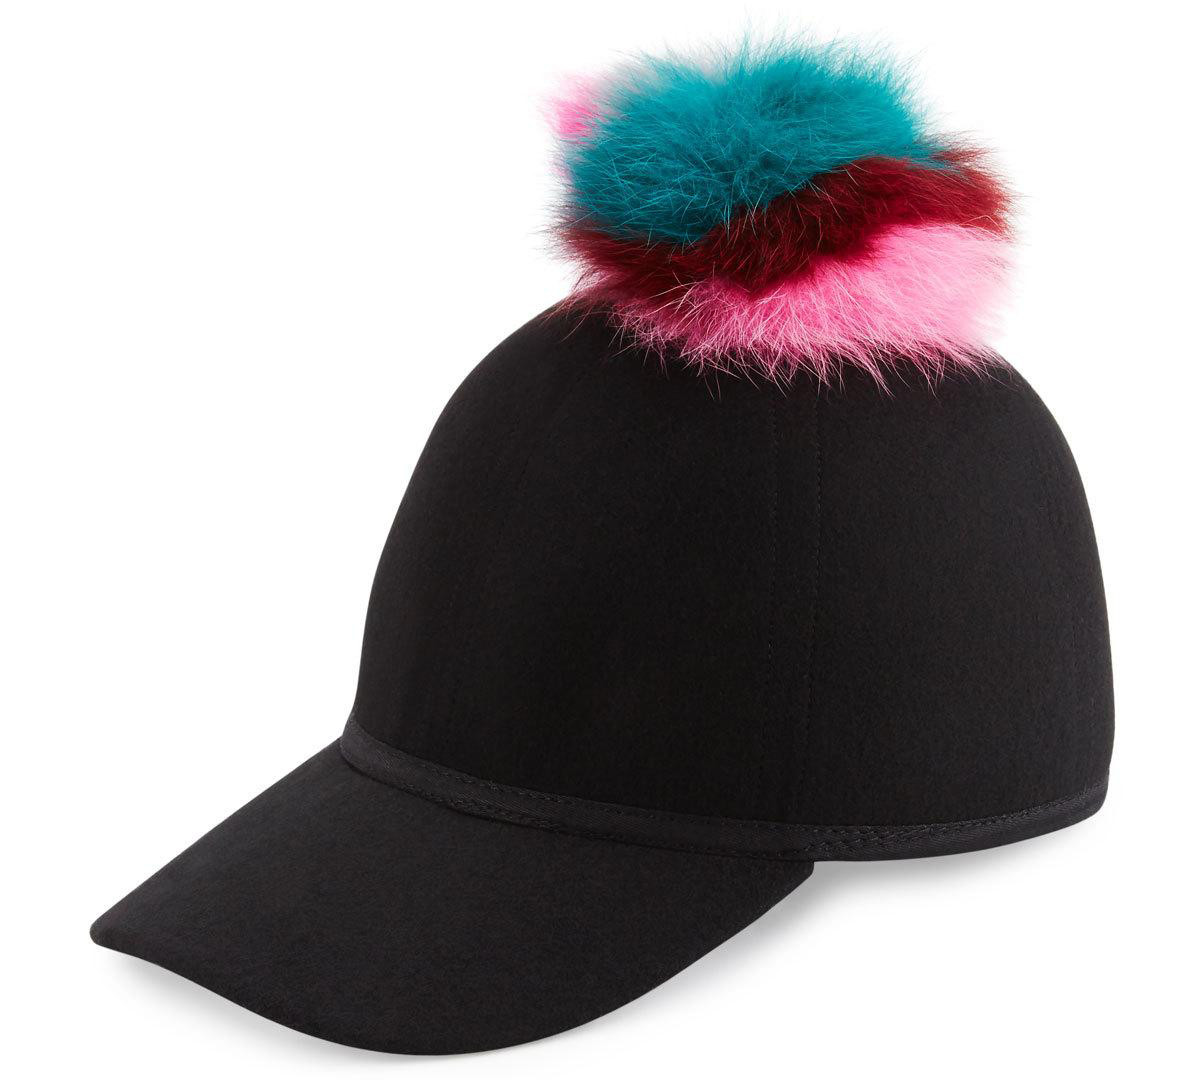 charlotte-simone-sass-single-pom-wool-felt-baseball-cap